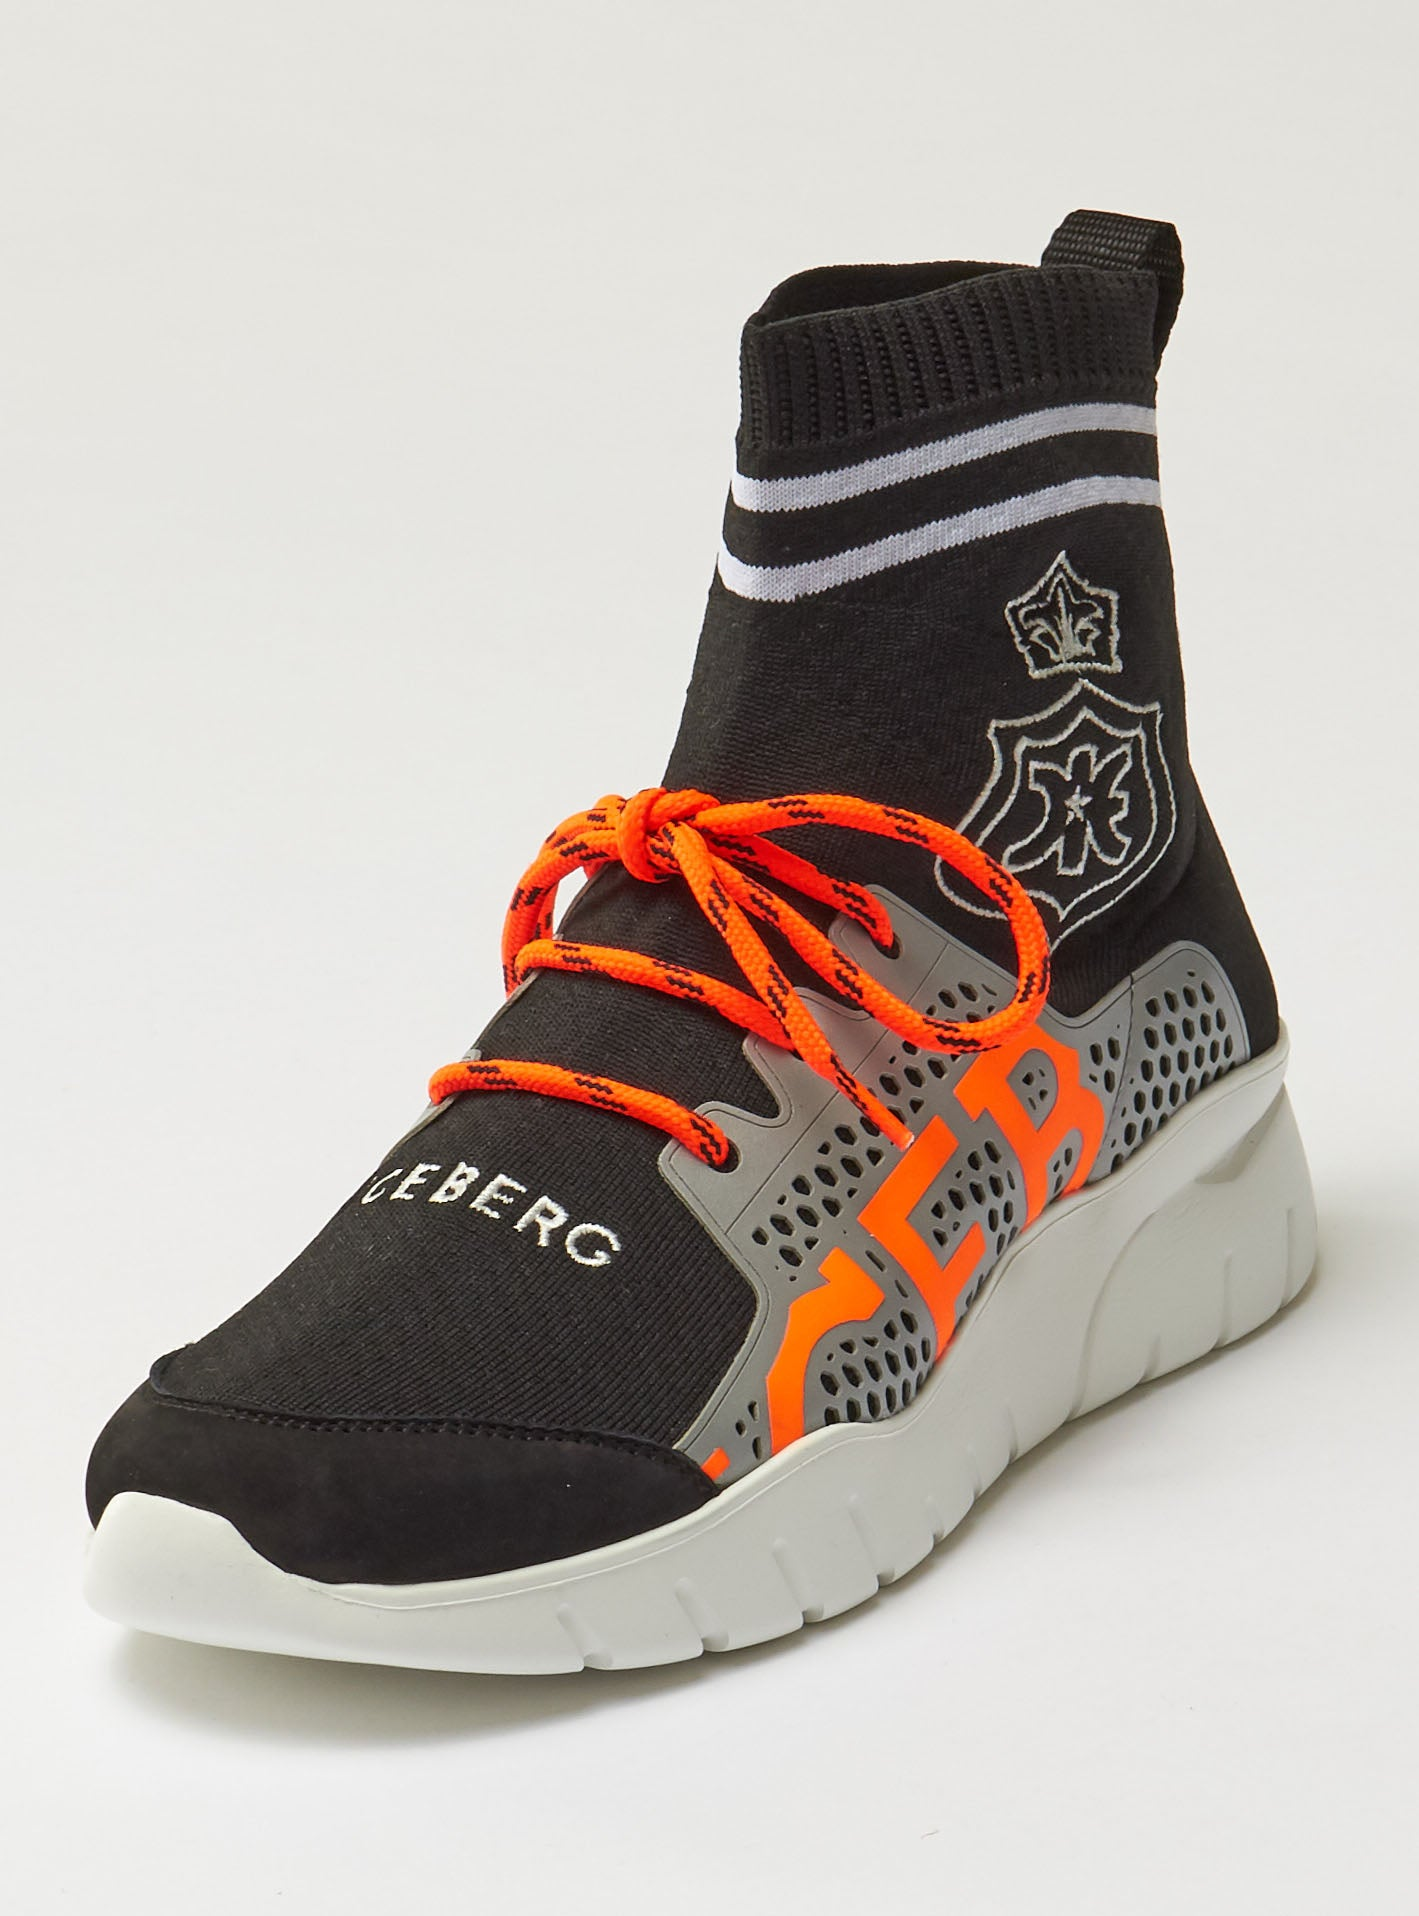 Iceberg Shoes - Sock Sneakers - Black